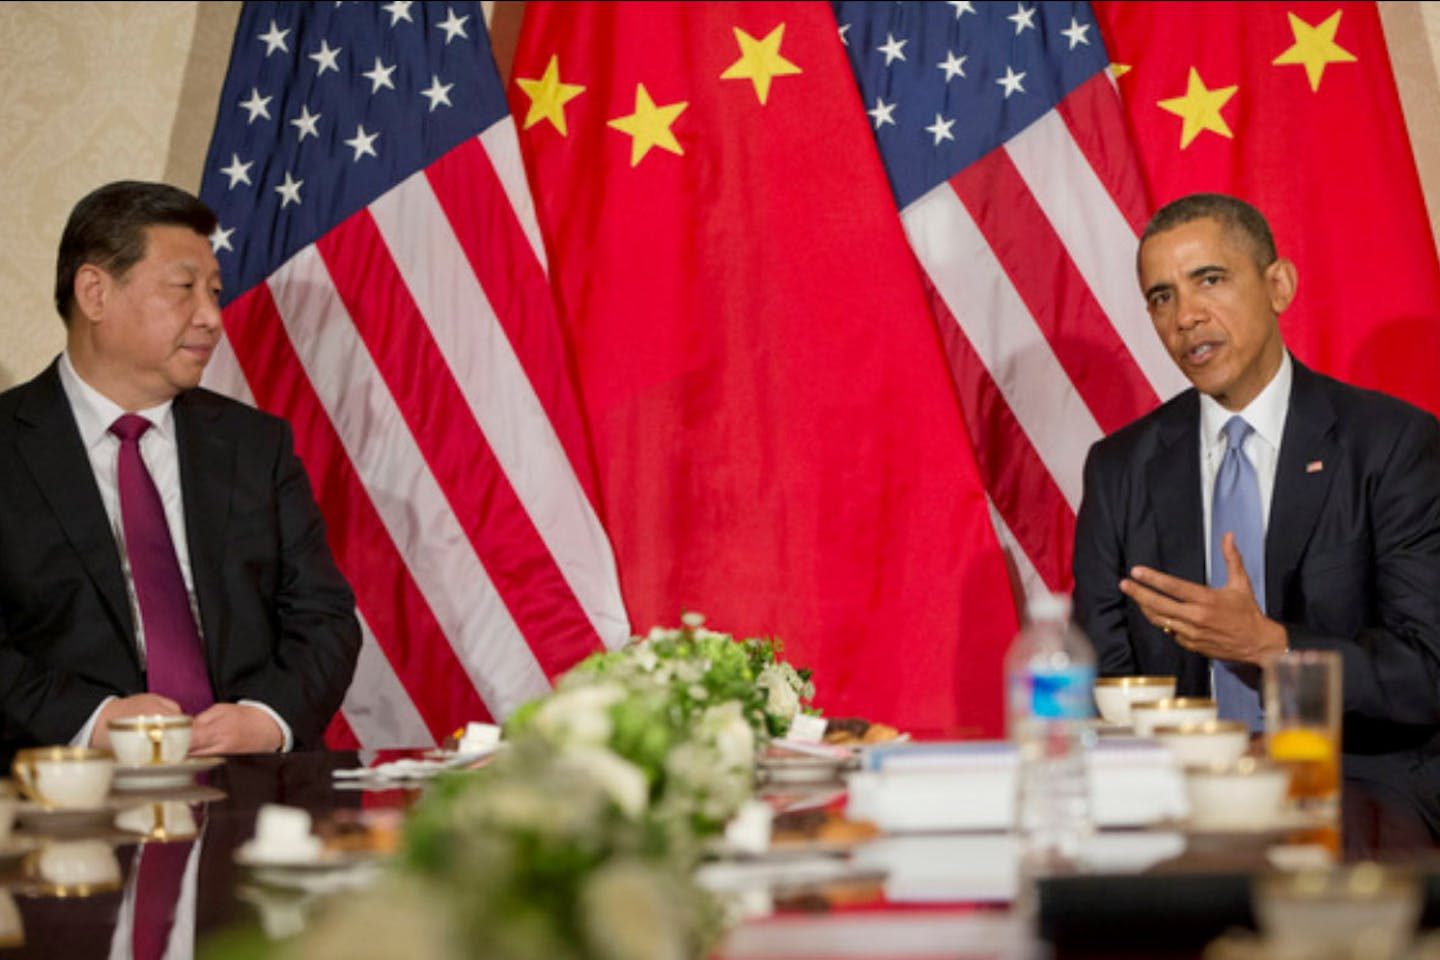 Obama and Xi meeting in the Netherlands